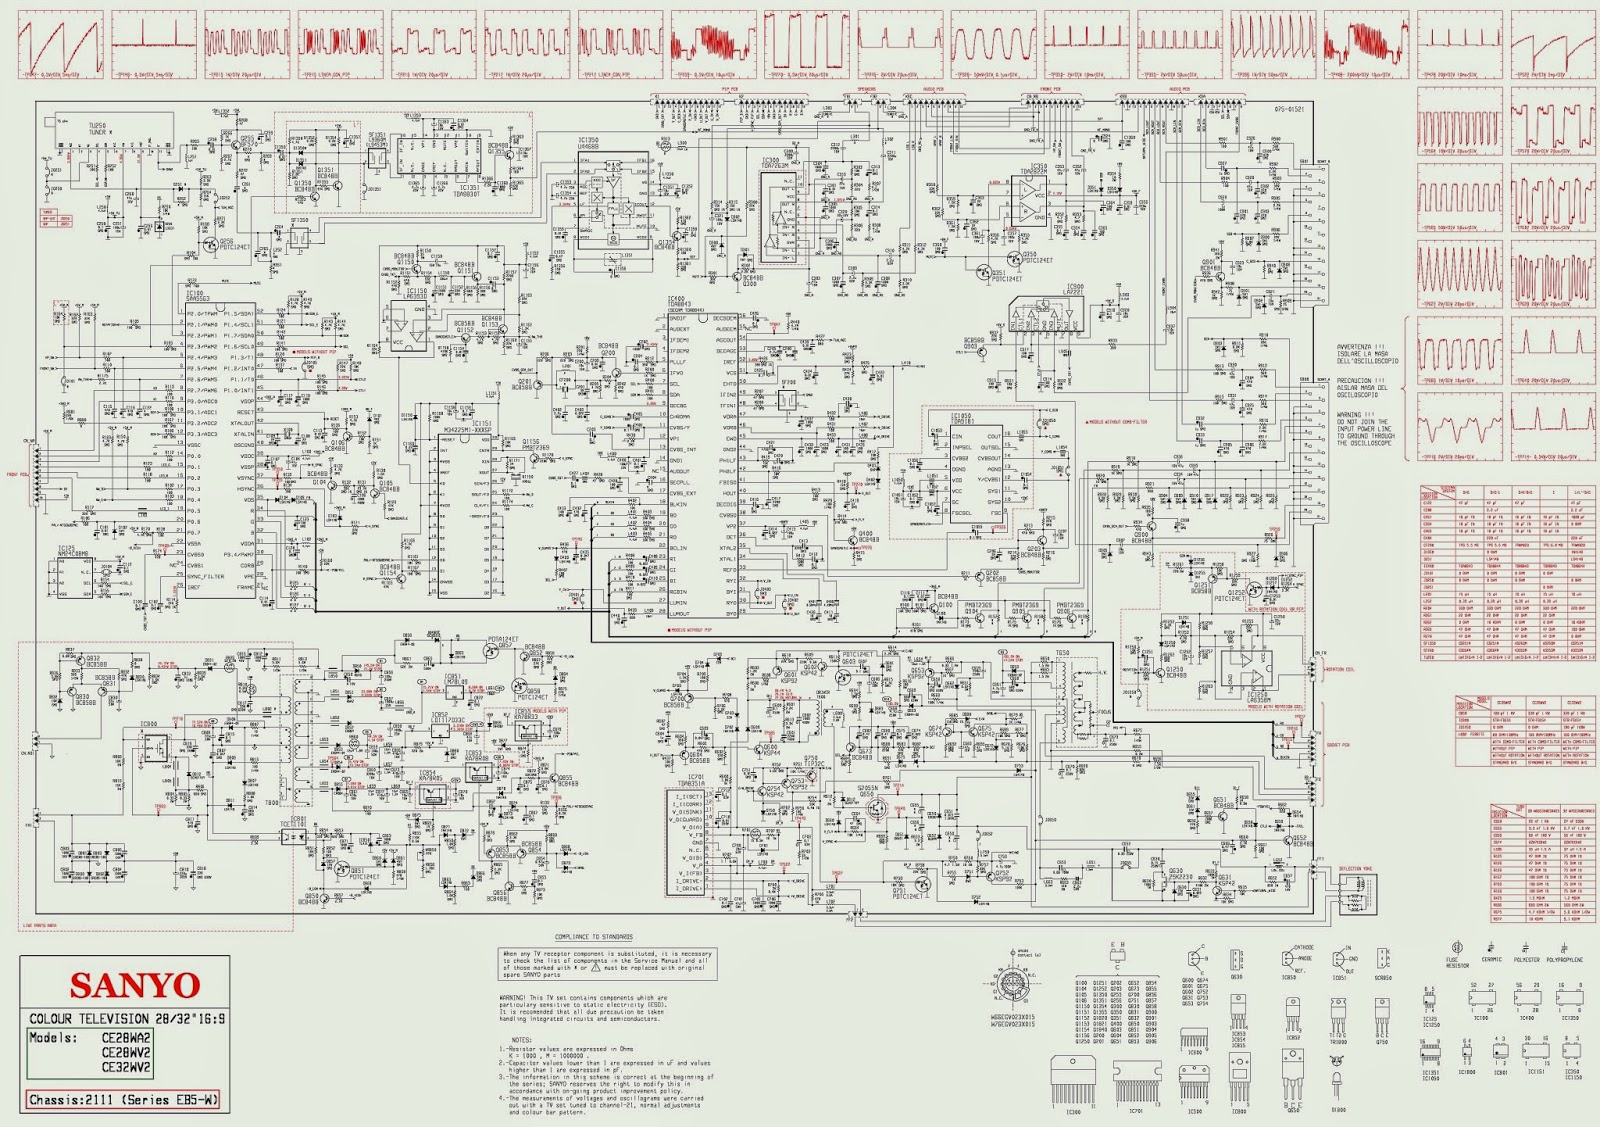 sanyo schematic diagram automotive wiring diagrams home theater systems wiring diagrams sanyo tv wiring diagram [ 1600 x 1127 Pixel ]